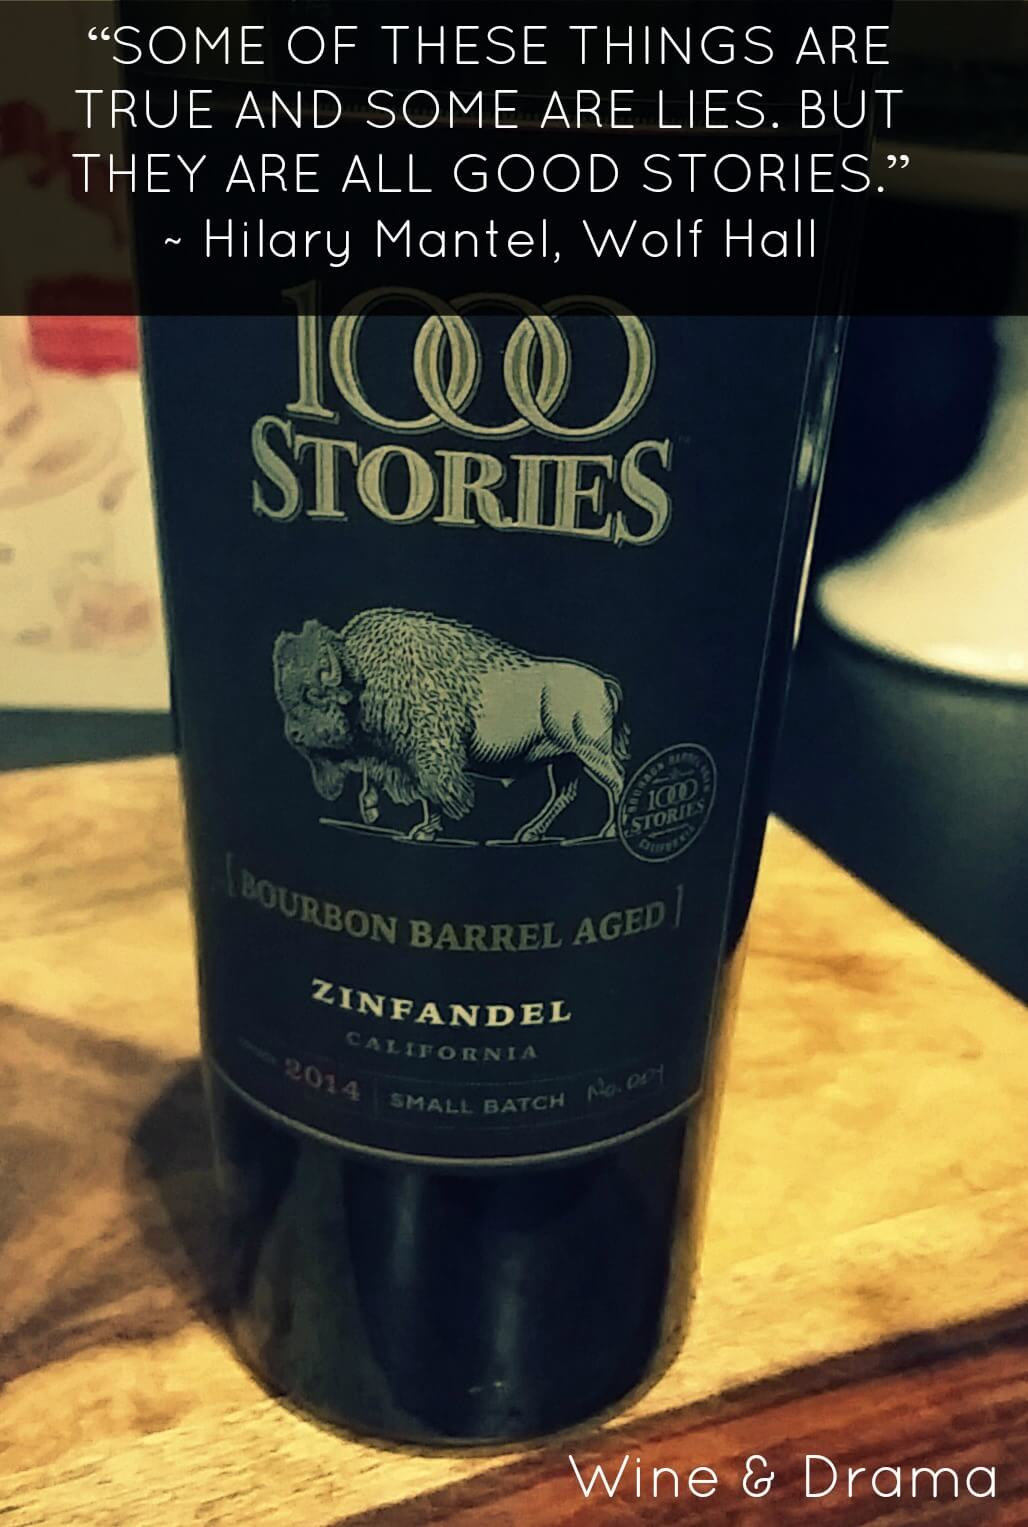 1000 stories zinfandel wine review